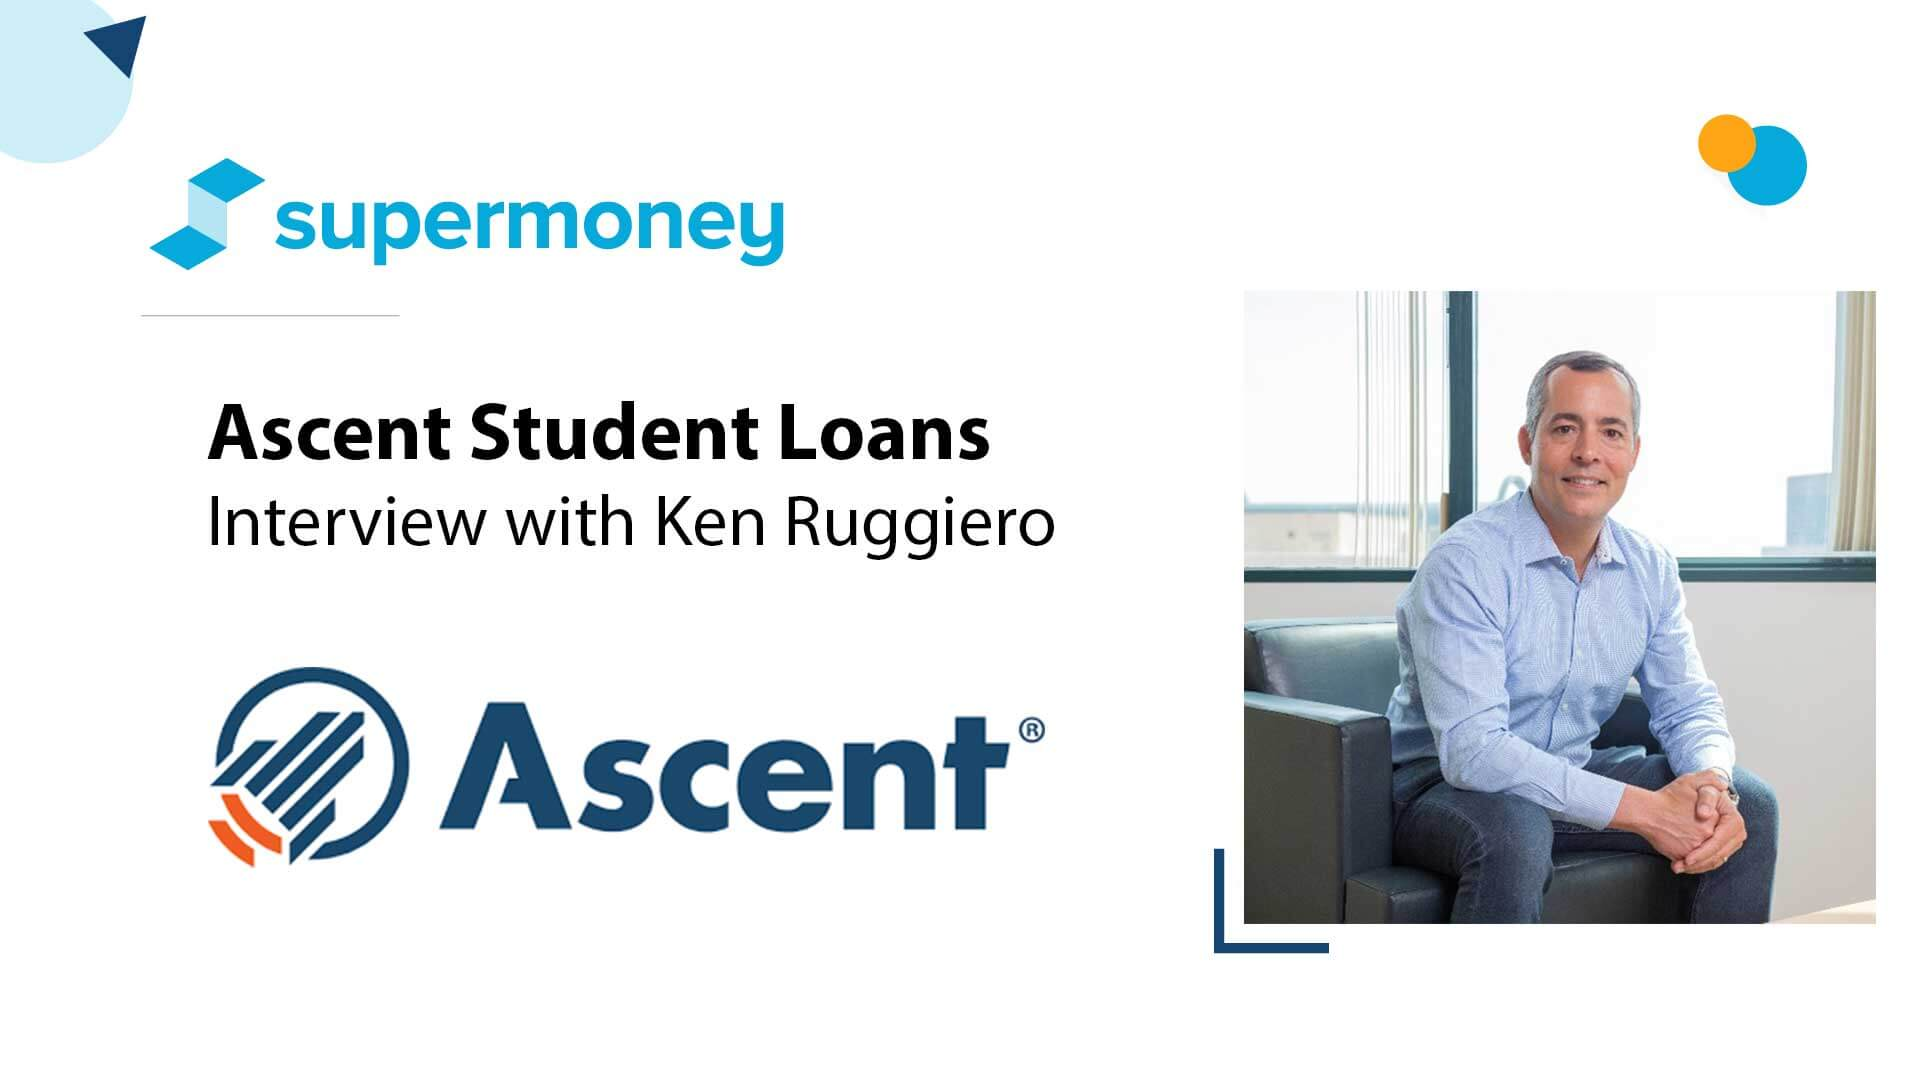 Image of Ken Ruggiero, CEO of Ascent Funding